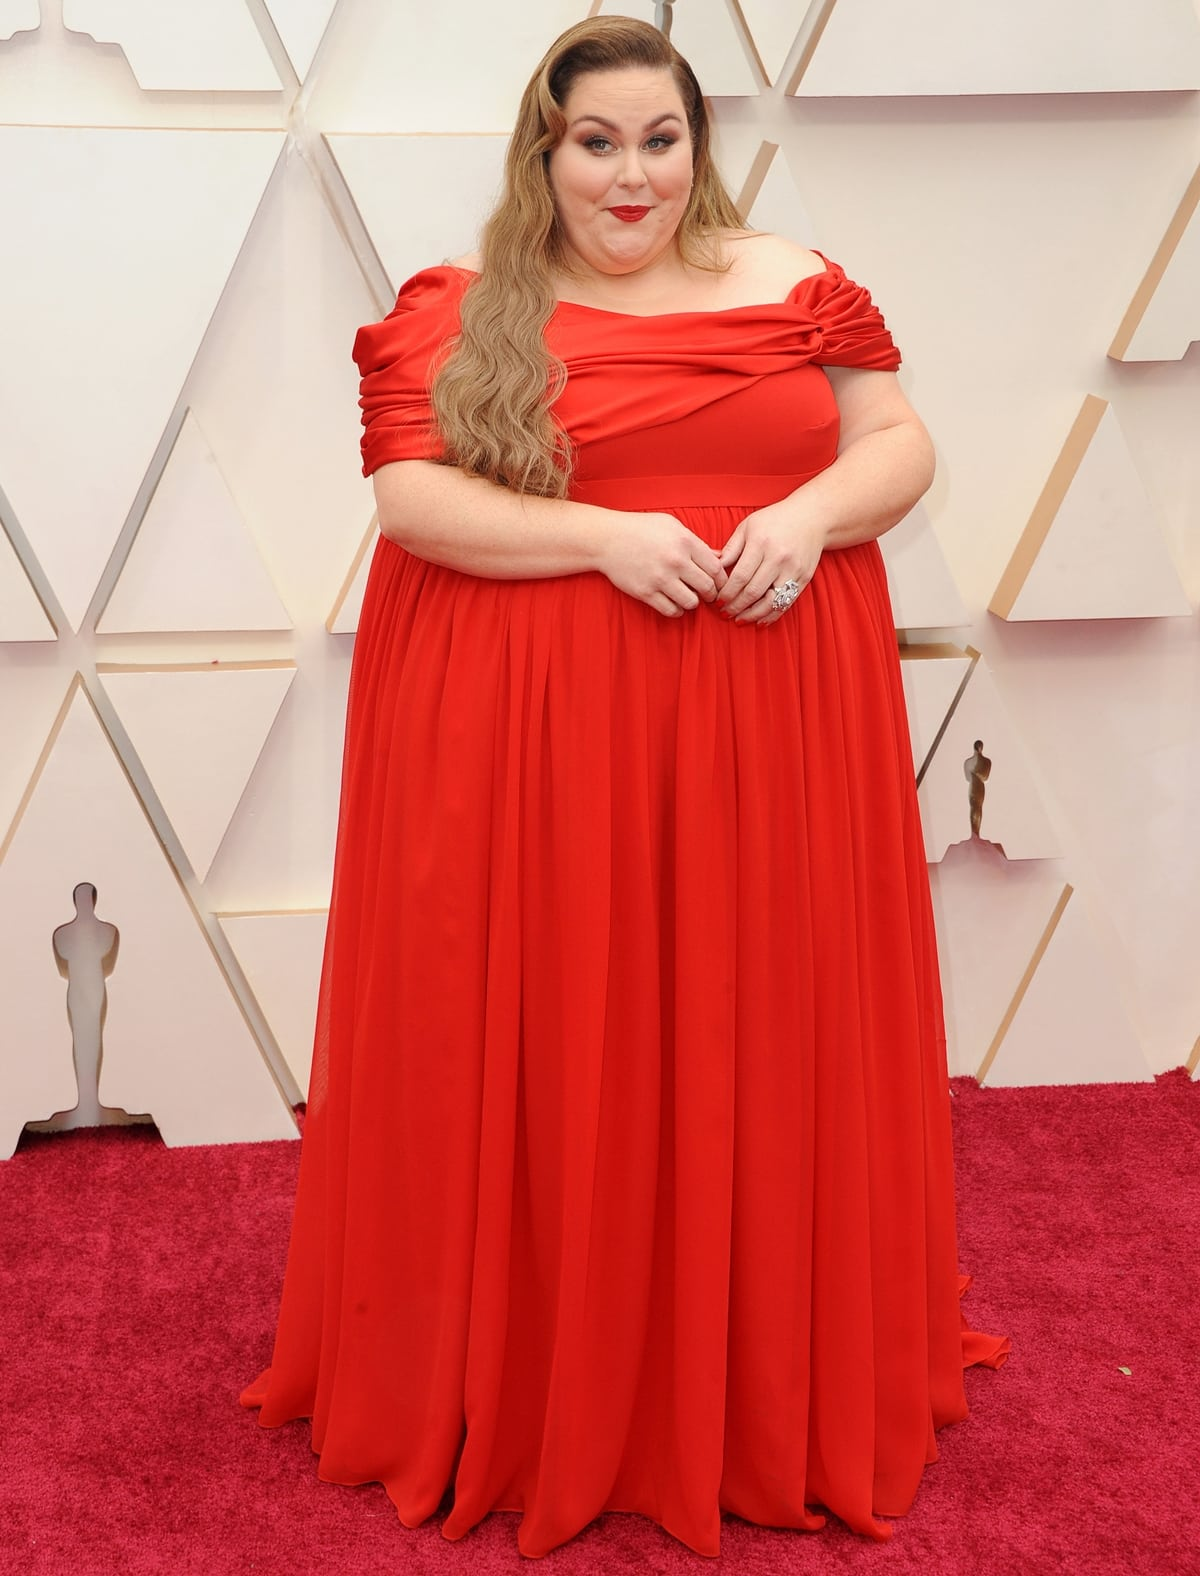 Chrissy Metz in a red off-the-shoulder dress by Christian Siriano at the 92nd Annual Academy Awards